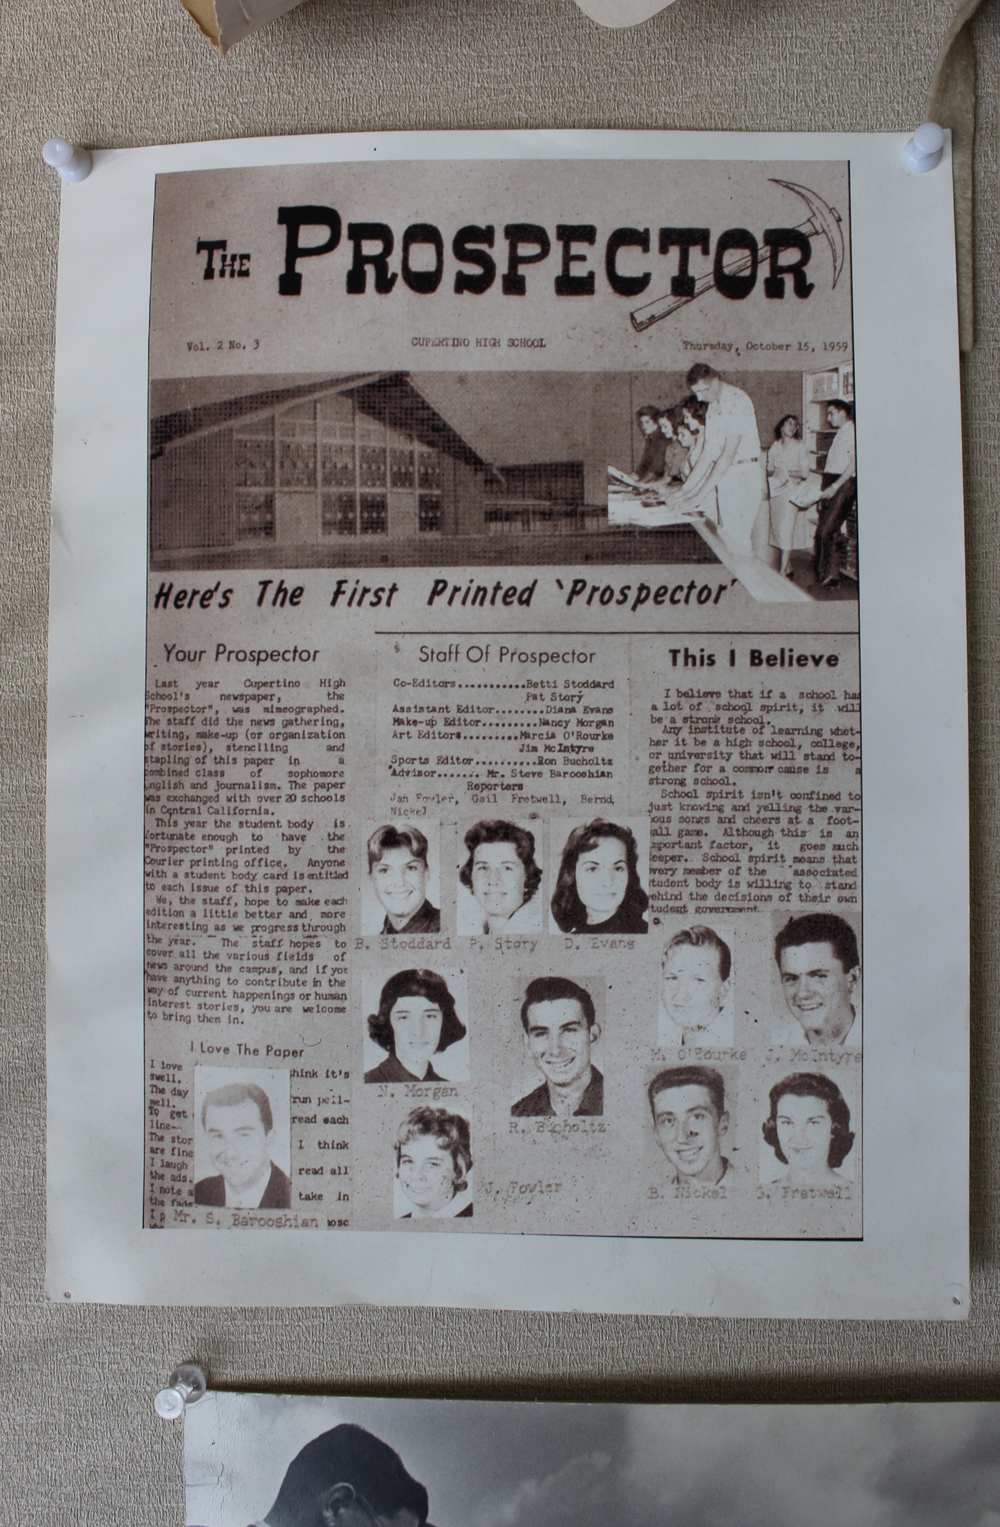 The Prospector from October 15th, 1959.